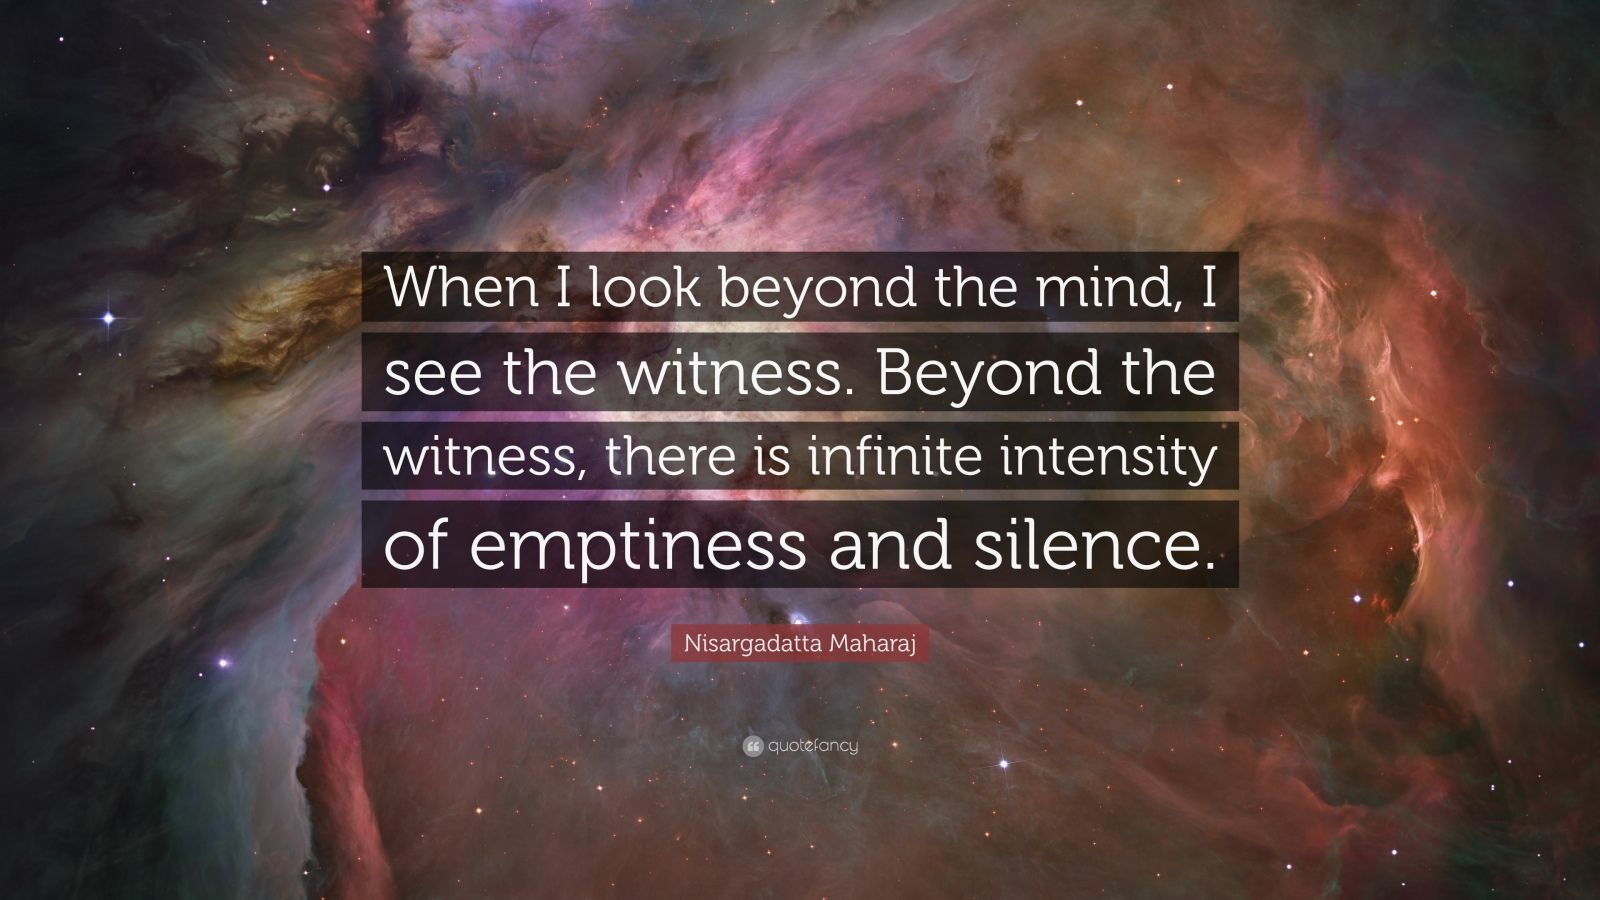 """Nisargadatta Maharaj Quote: """"When I look beyond the mind, I see the witness. Beyond the witness, there is infinite intensity of emptiness and silence."""""""